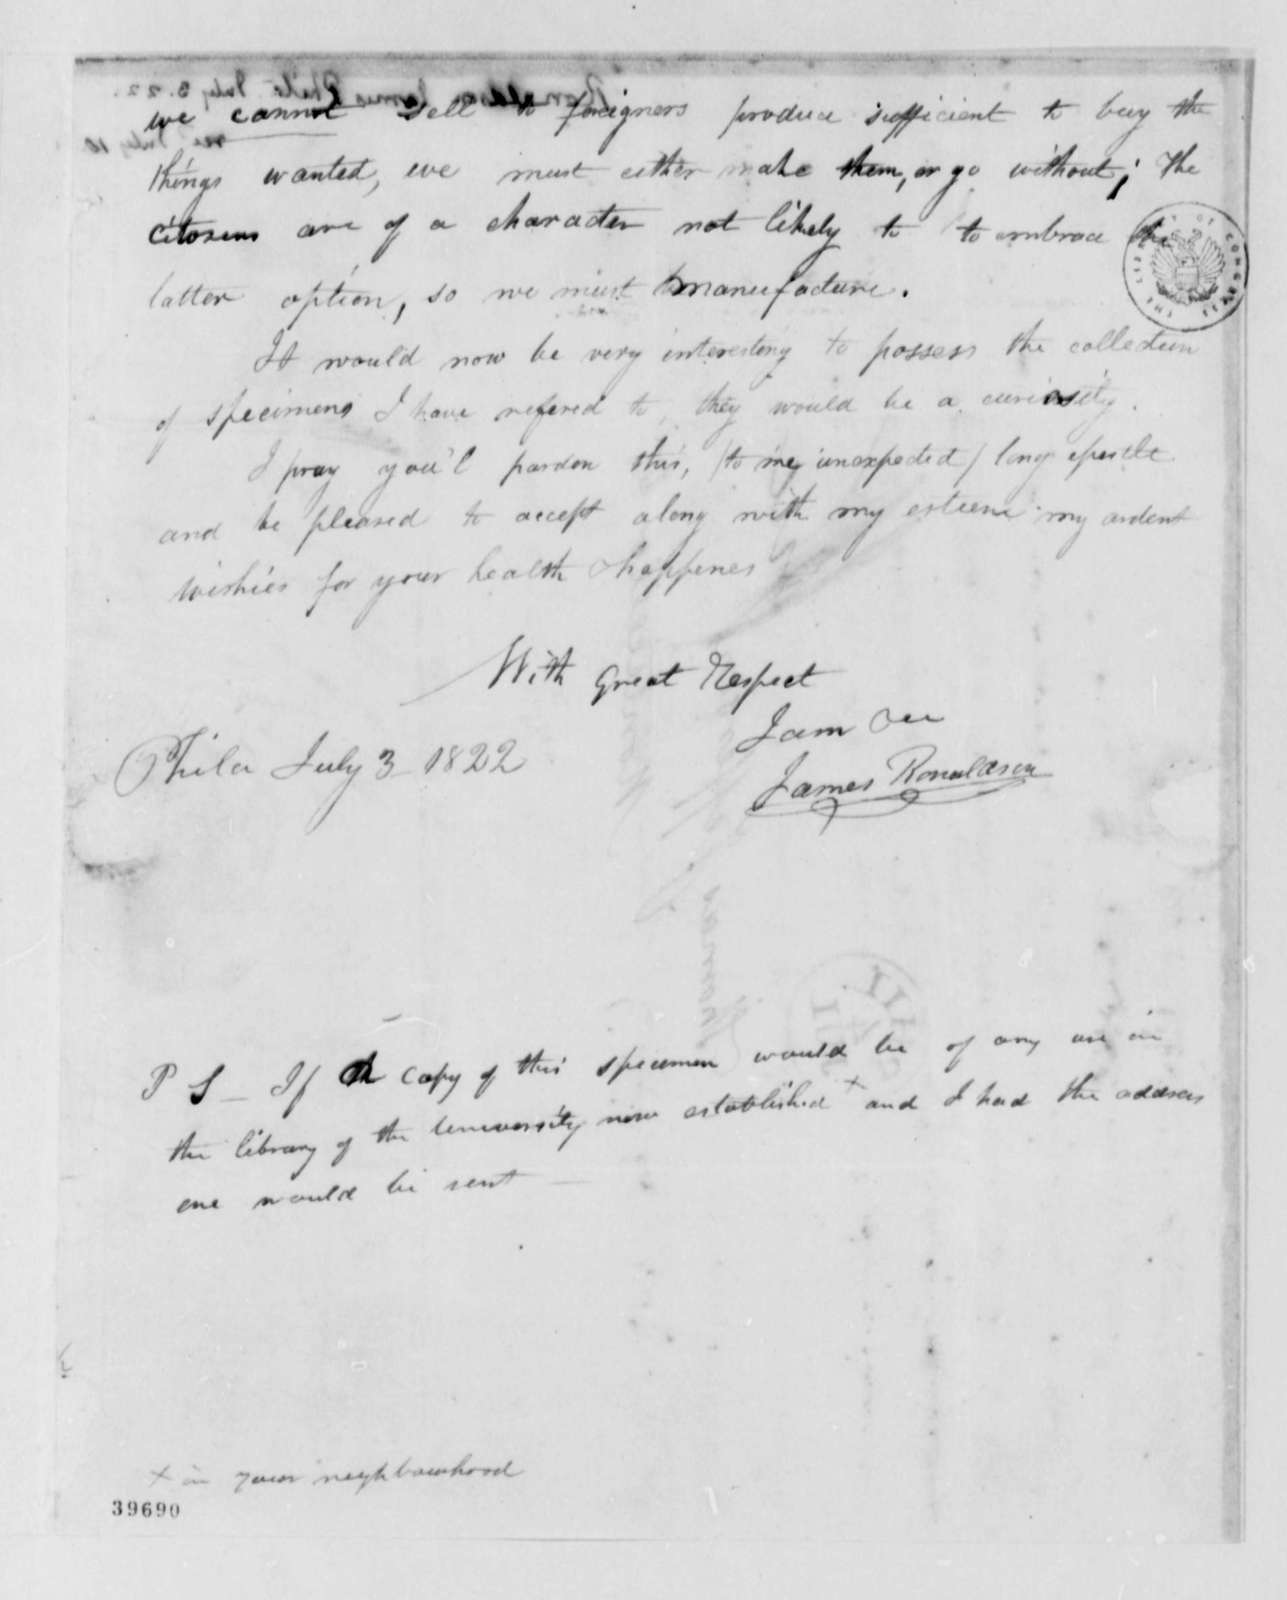 James Ronaldson to Thomas Jefferson, July 3, 1822